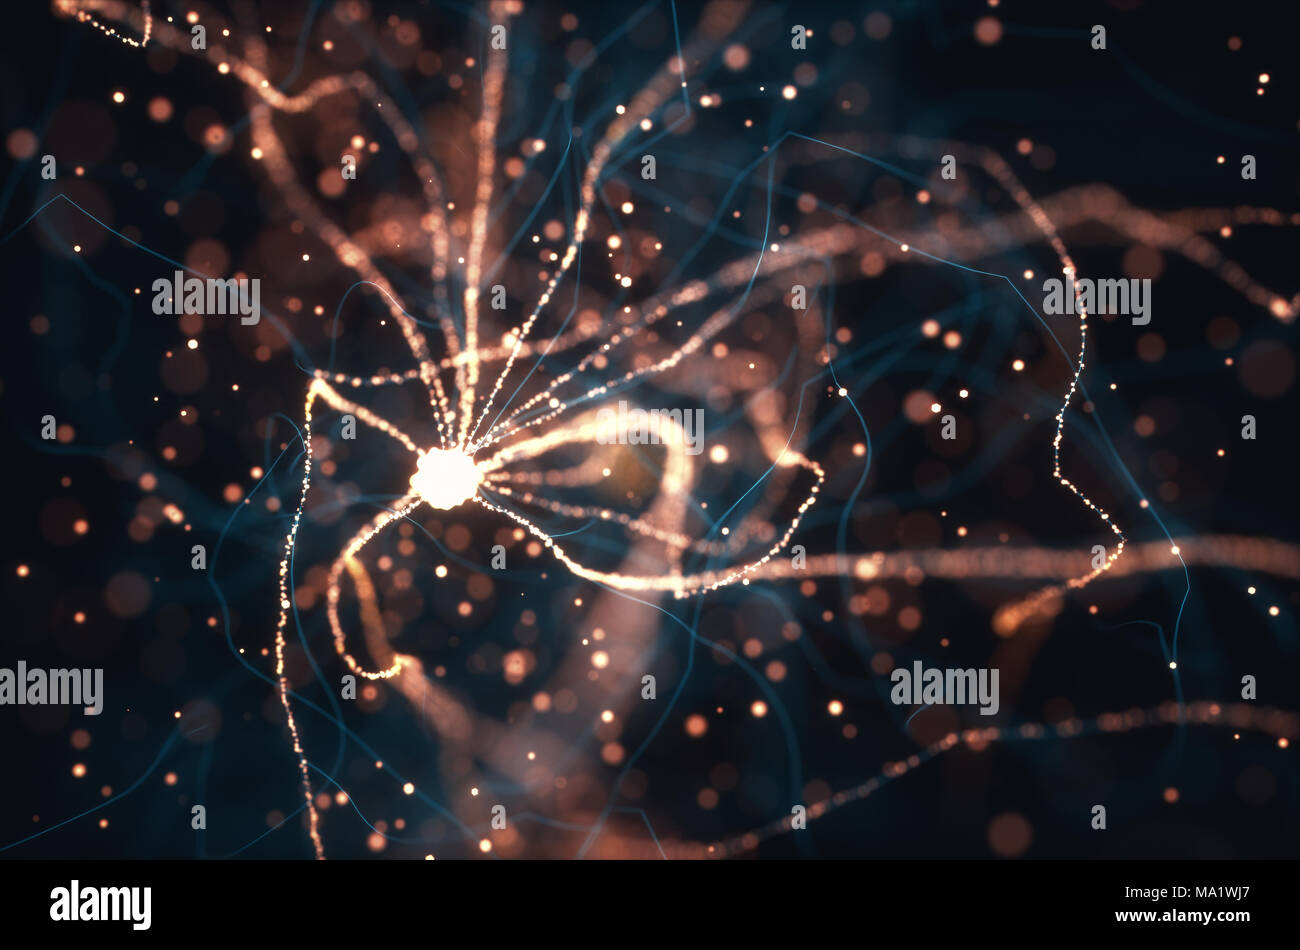 3D illustration of Interconnected neurons with electrical pulses. - Stock Image